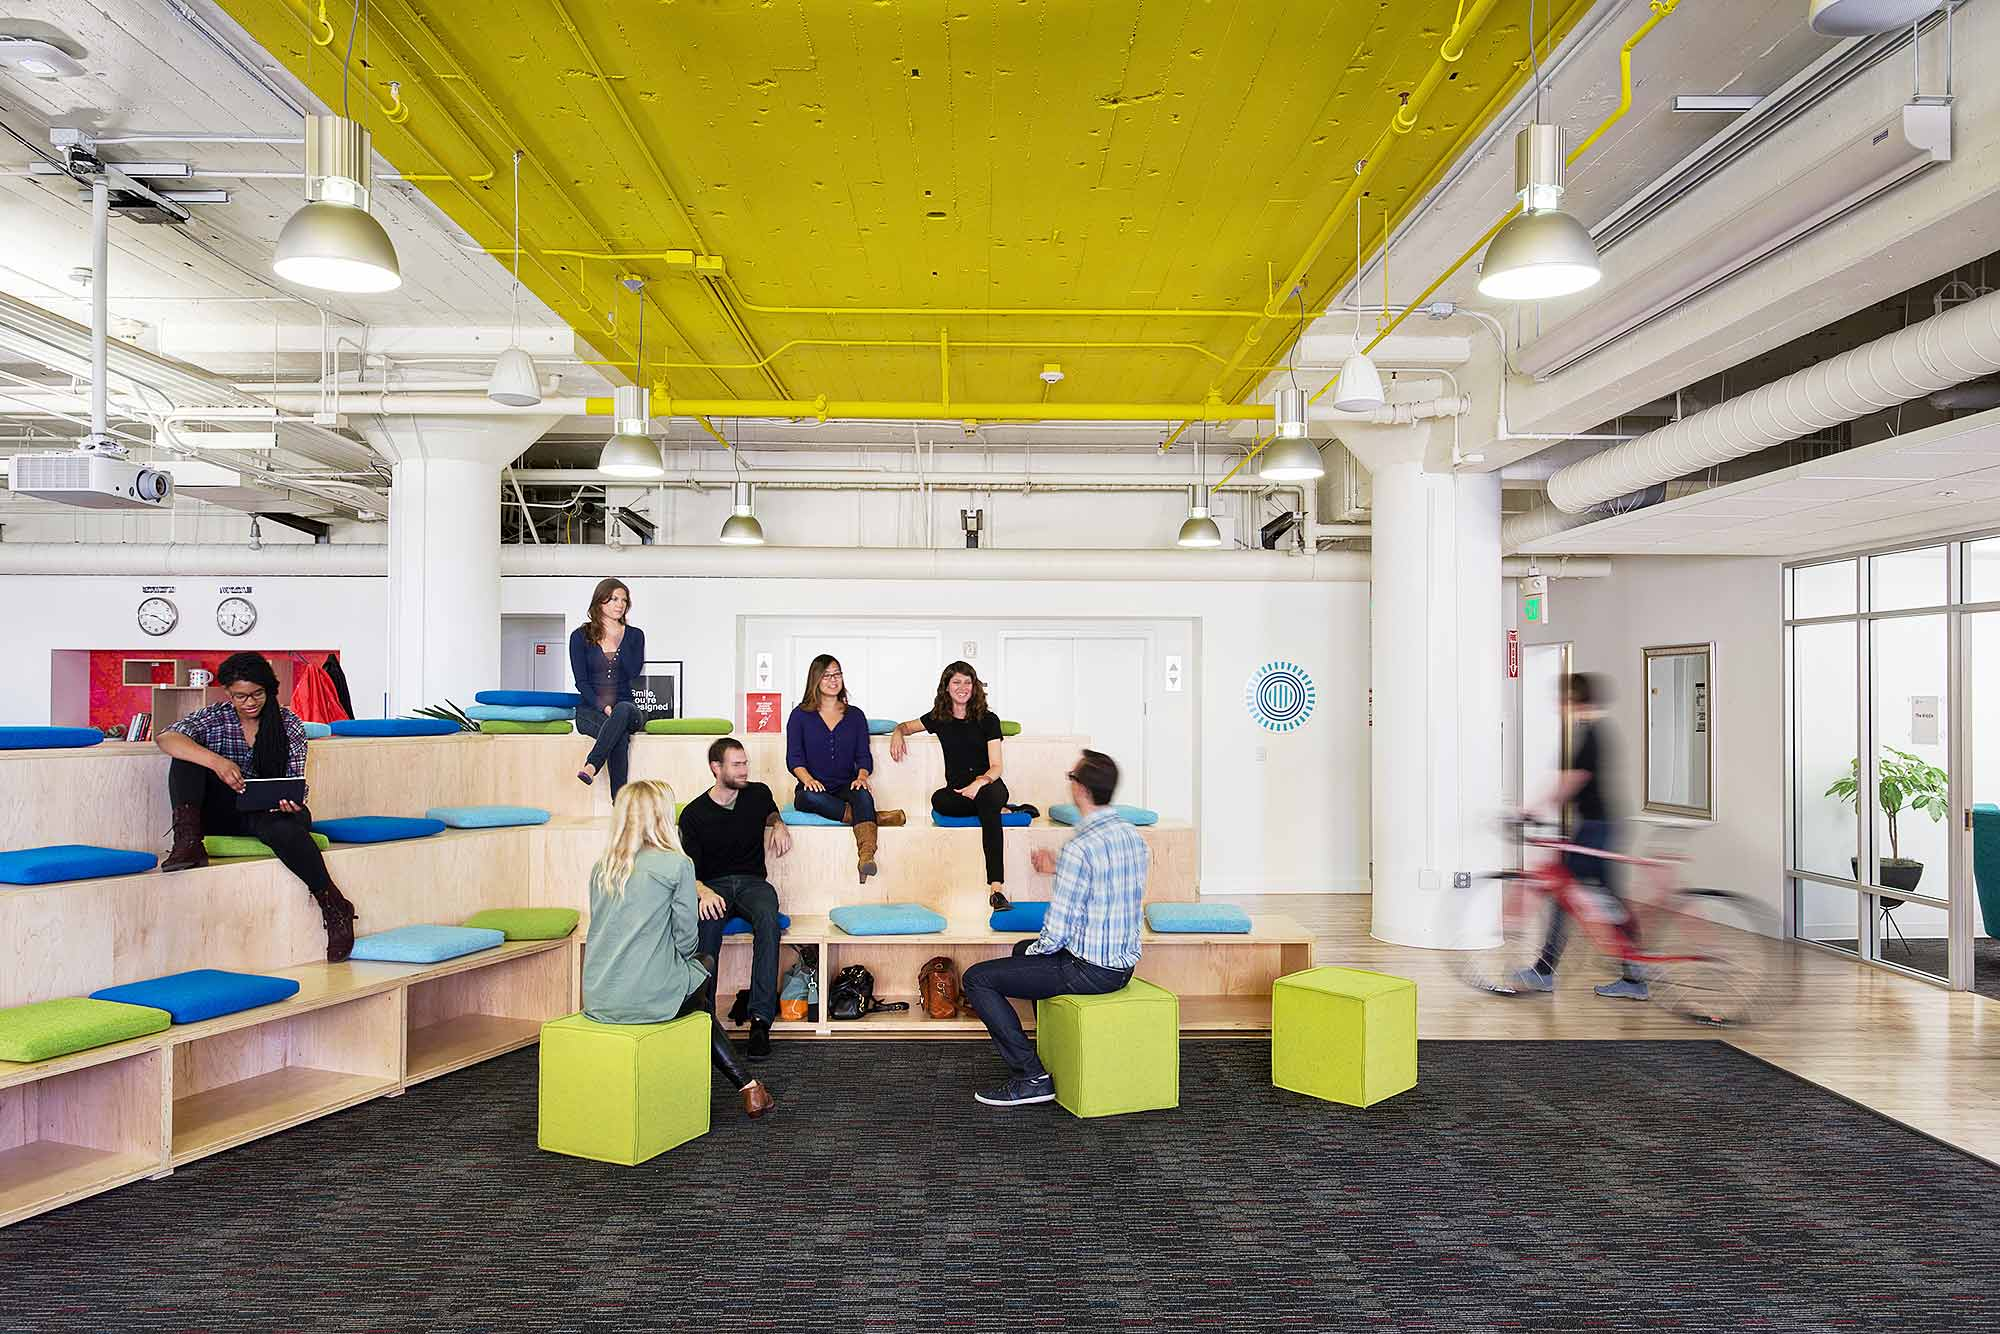 A peek inside prezi s cool san francisco office officelovin 39 for Interior design studium